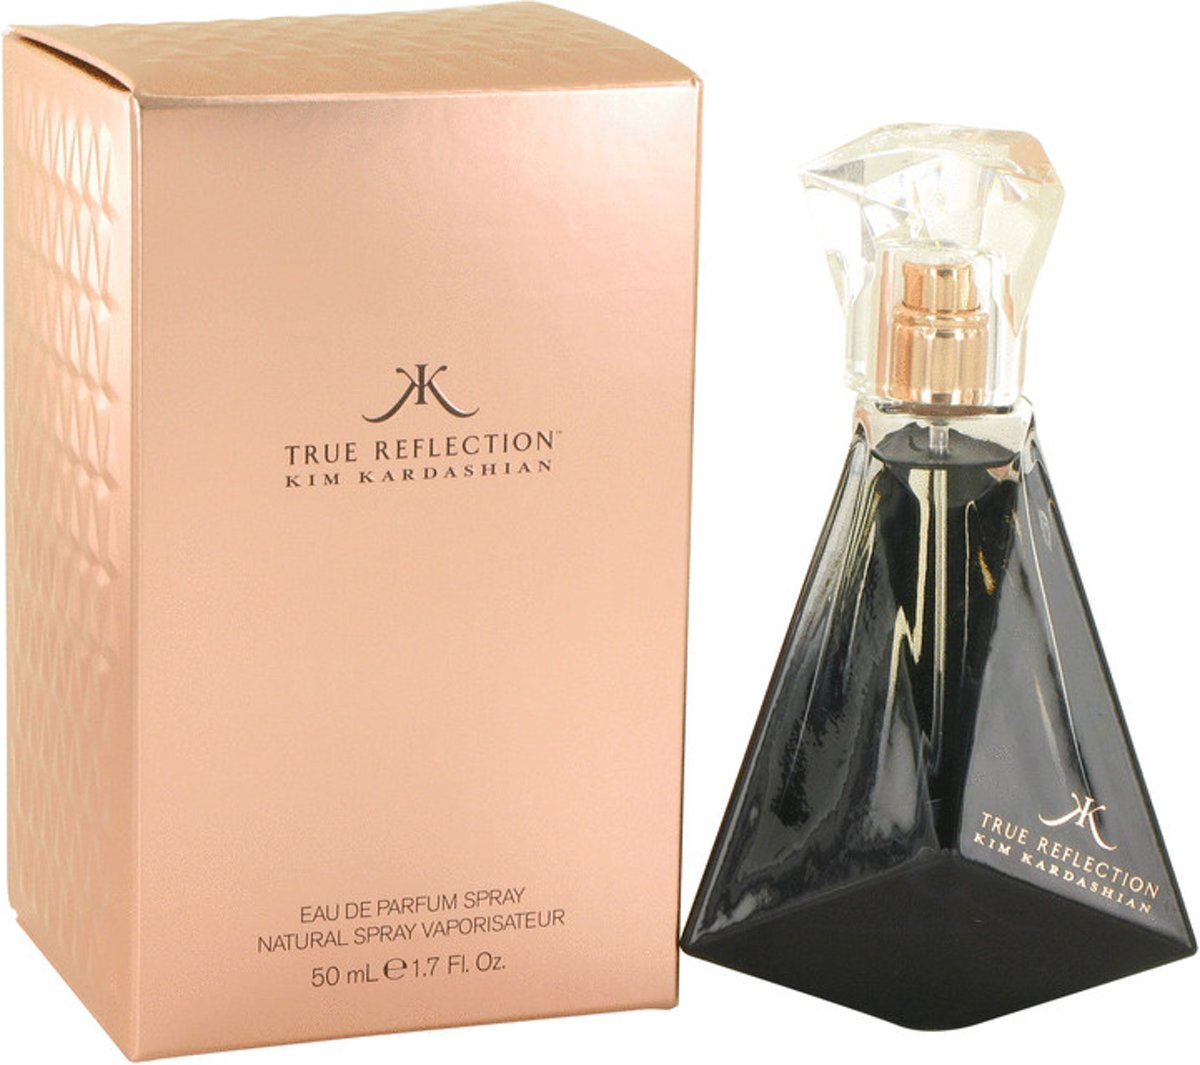 Kim Kardashian True Reflection 50 ml Eau de Parfum Spray